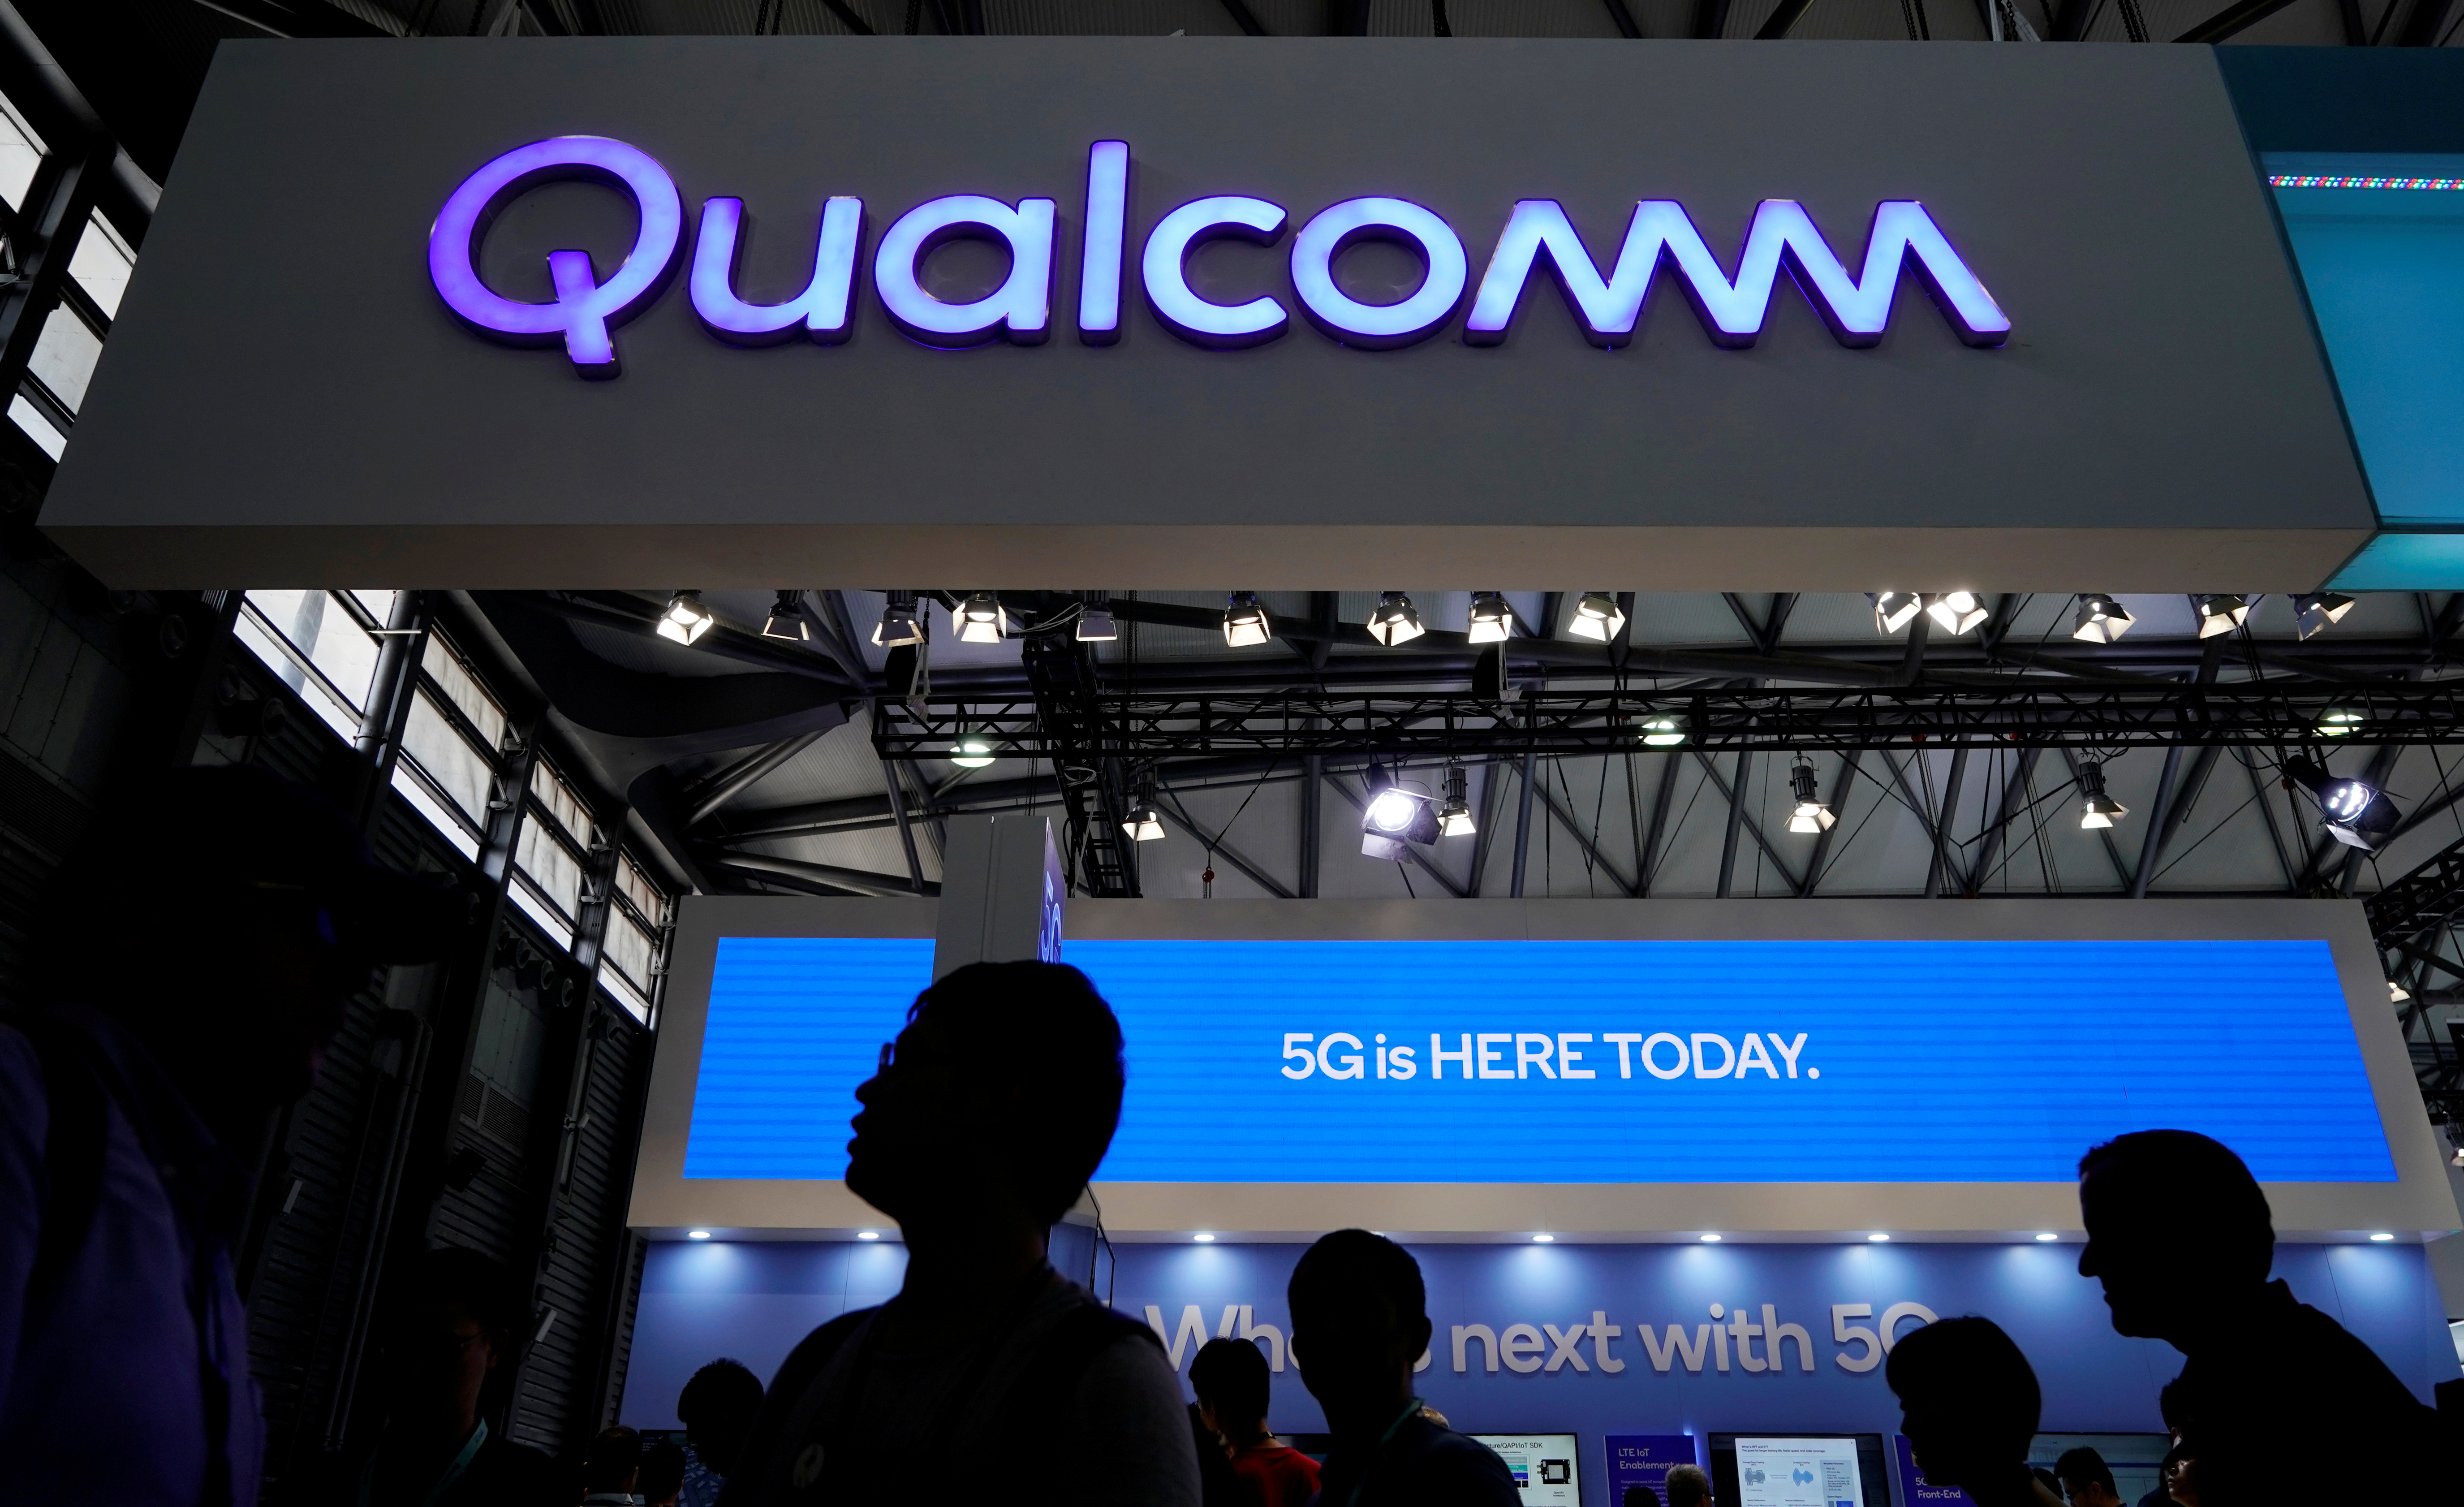 File photo: A Qualcomm sign is pictured at the Mobile World Congress in Shanghai, China June 28, 2019. REUTERS/Aly Song